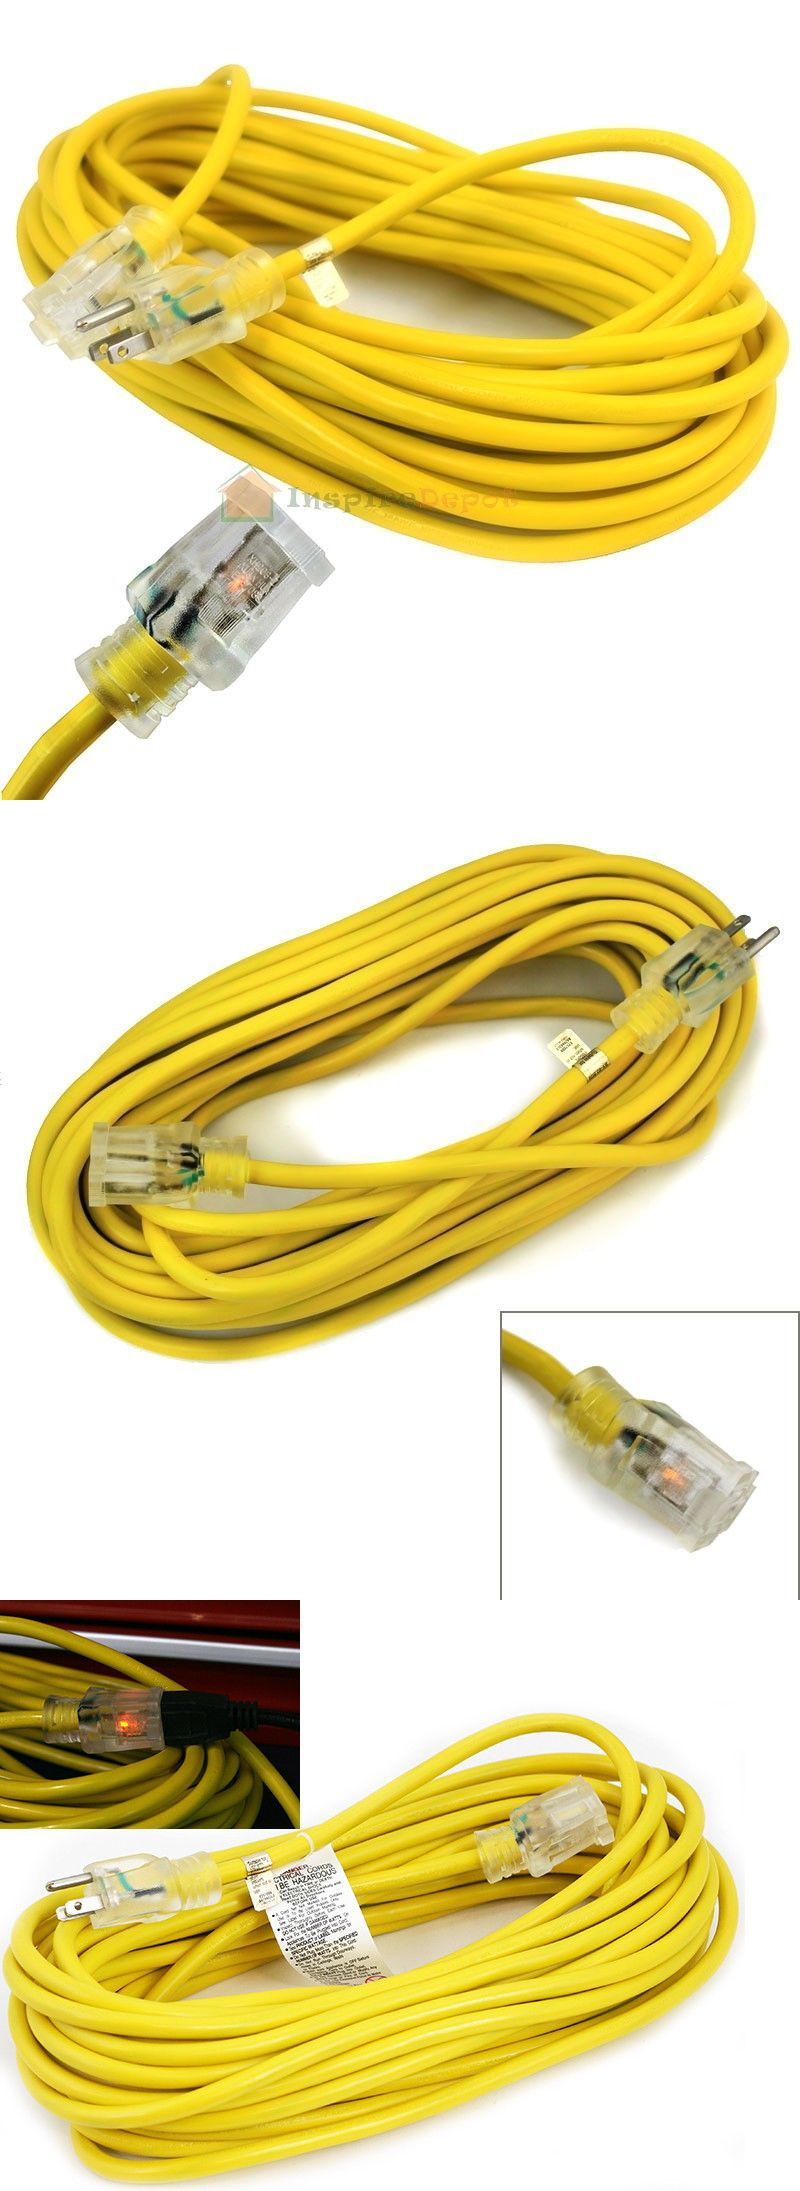 100ft 14gauge Extension Power Cord Copper Wire Ul 15 Amp Current Cable Plug Power Cord Cable Plug Cord